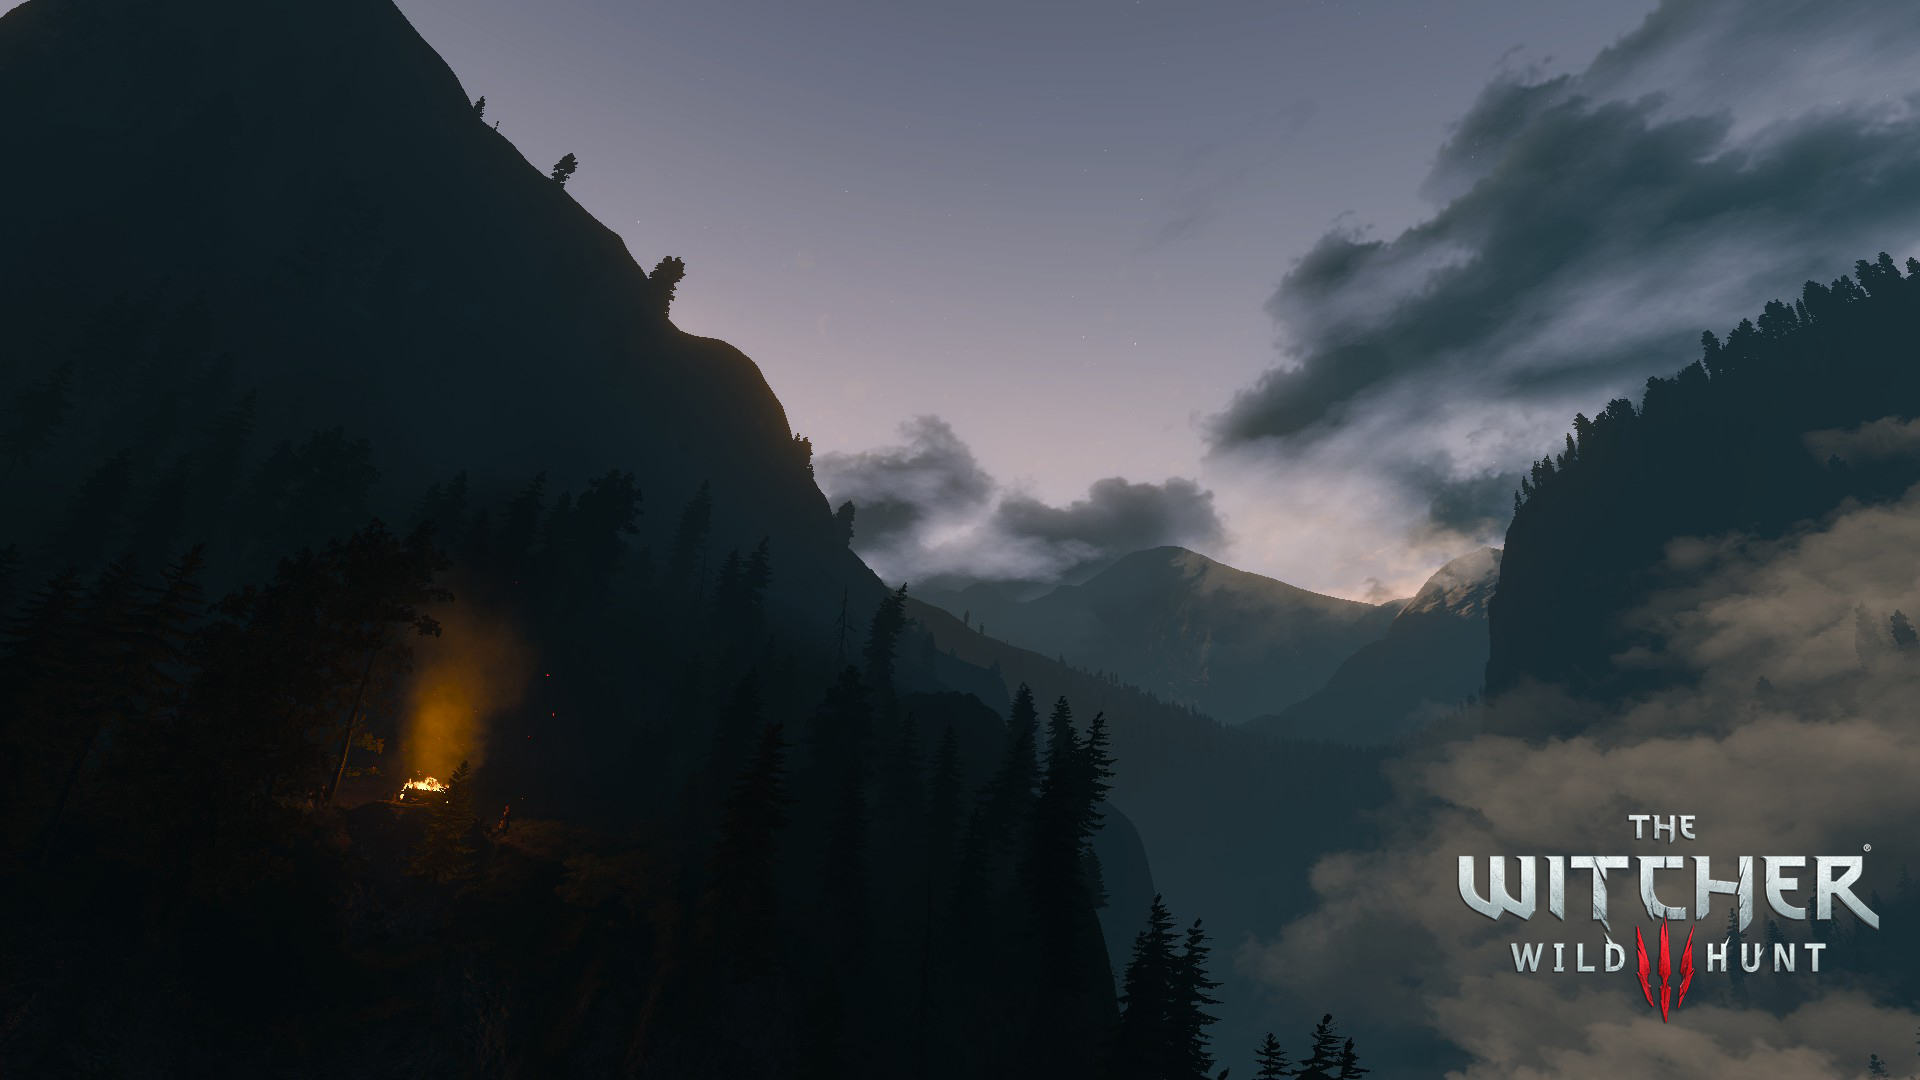 I-made-some-using-some-of-my-favourite-screenshots-and-adding-the-Witcher-logo-x-wallpaper-wpc5806200